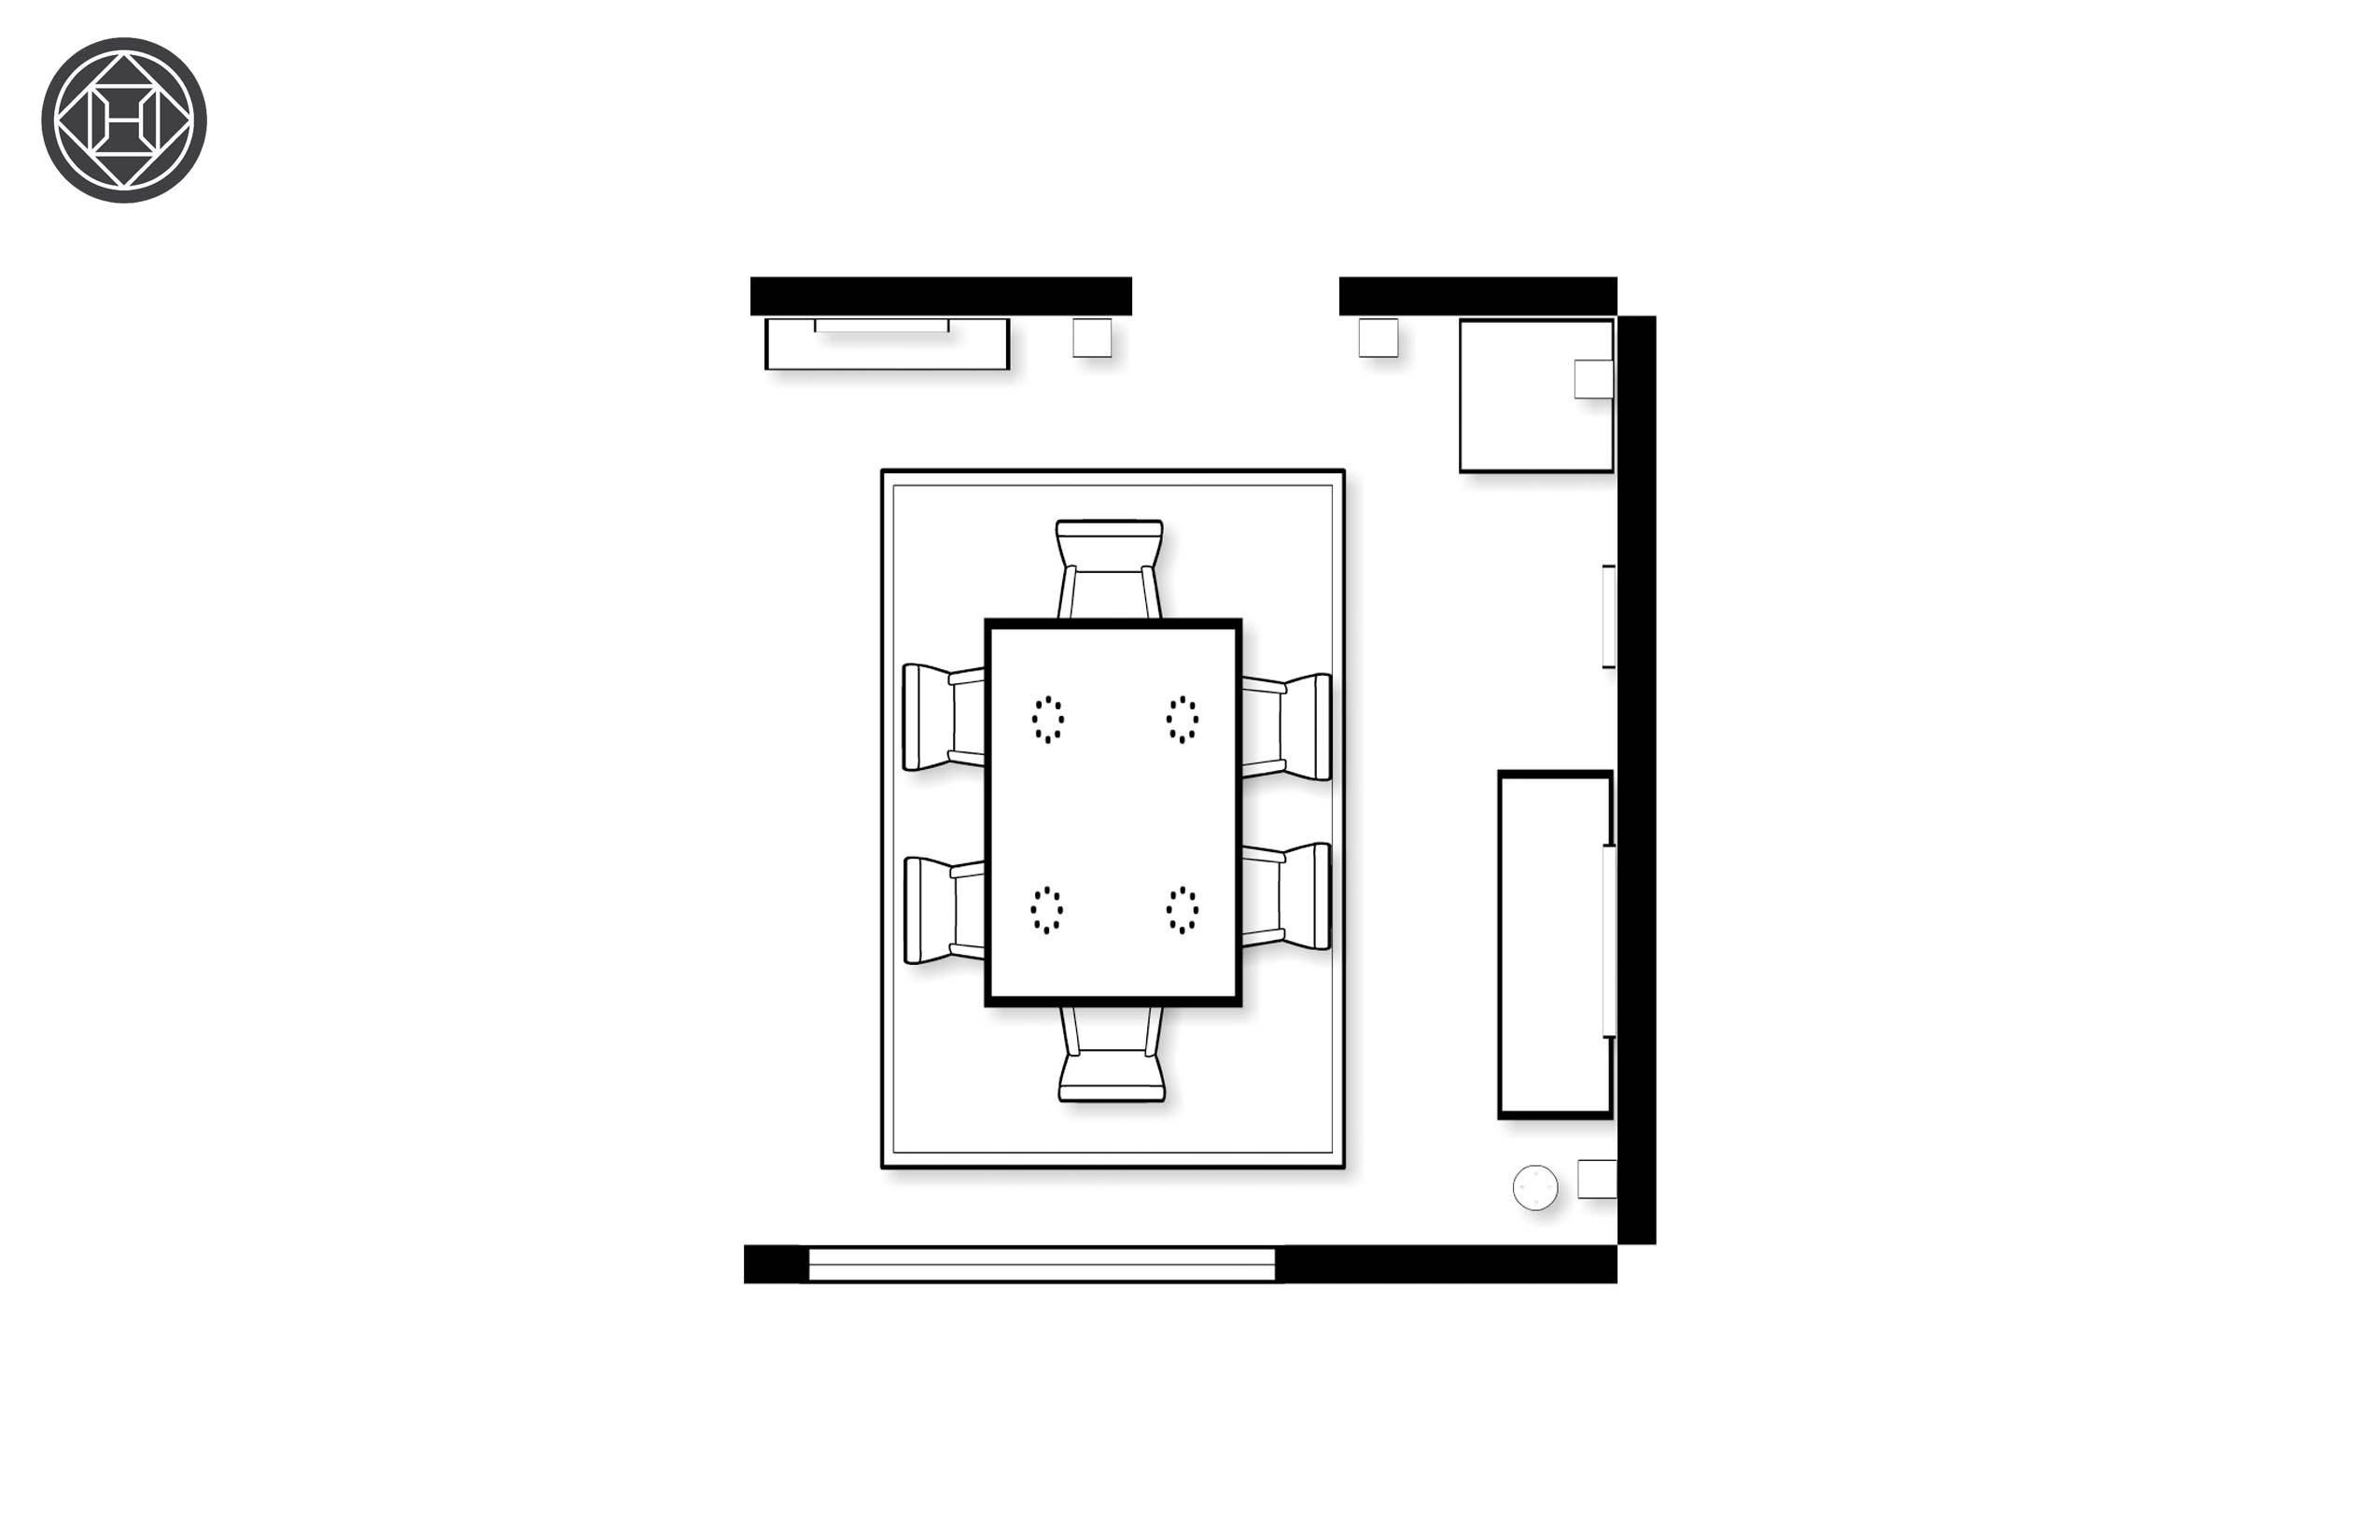 havenly vs decorilla - havenly optional floor plan